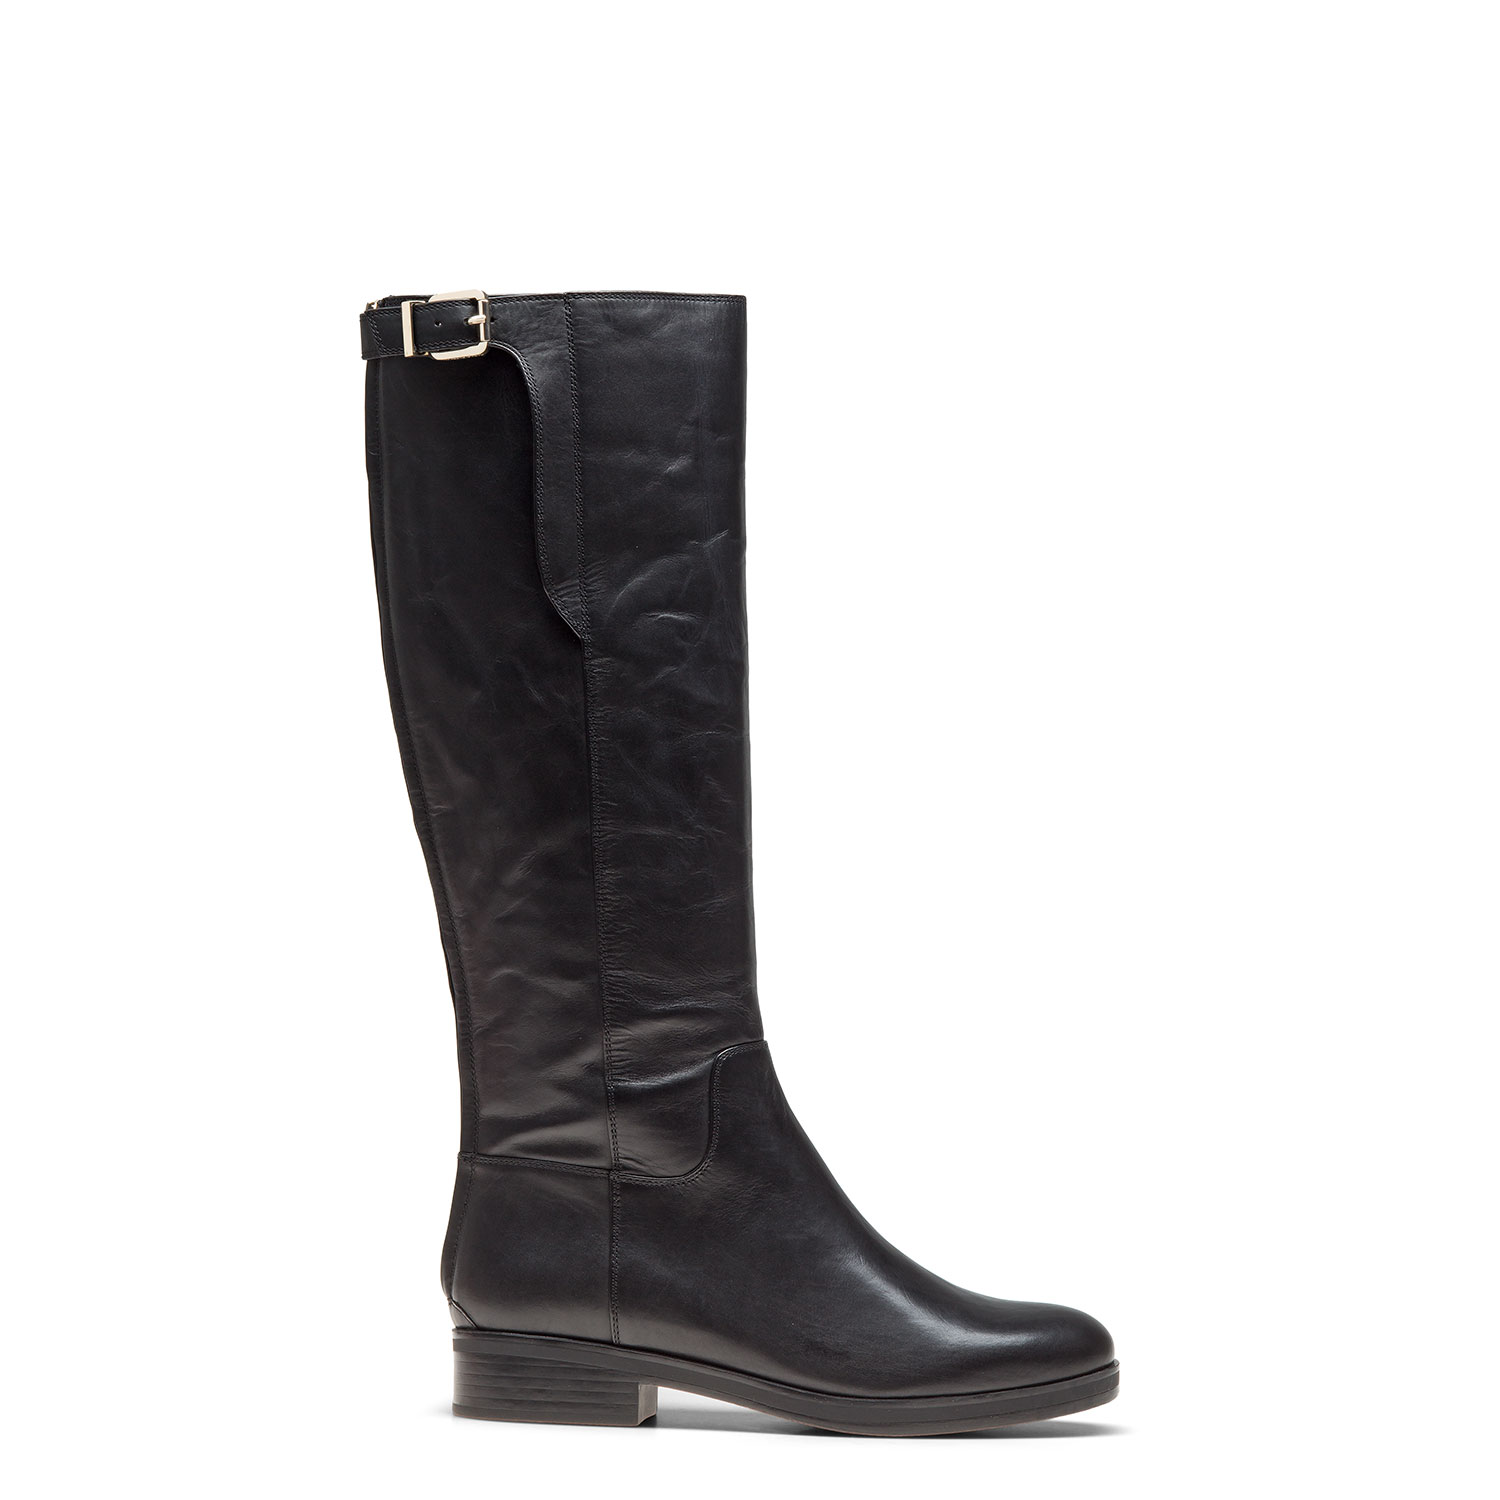 Women's cold weather high boots CARLO PAZOLINI MT-TID1-1